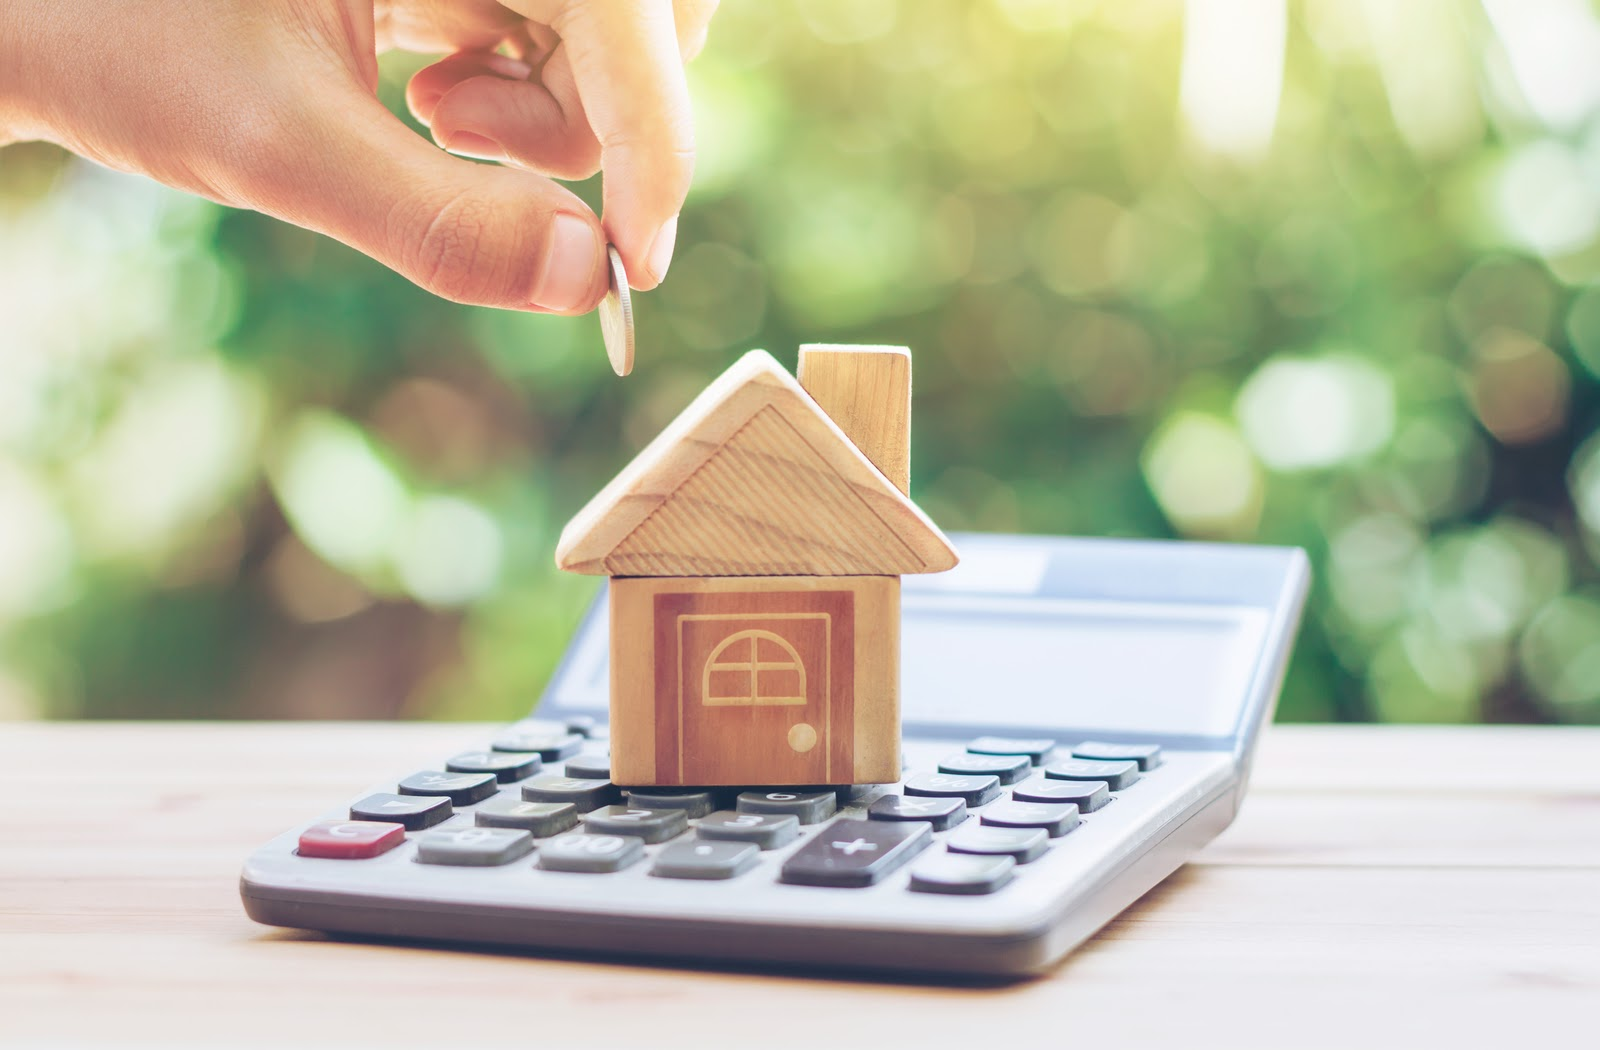 A small house sitting on the face of a calculator with a hand reaching towards it with money deciding what mortgage is best